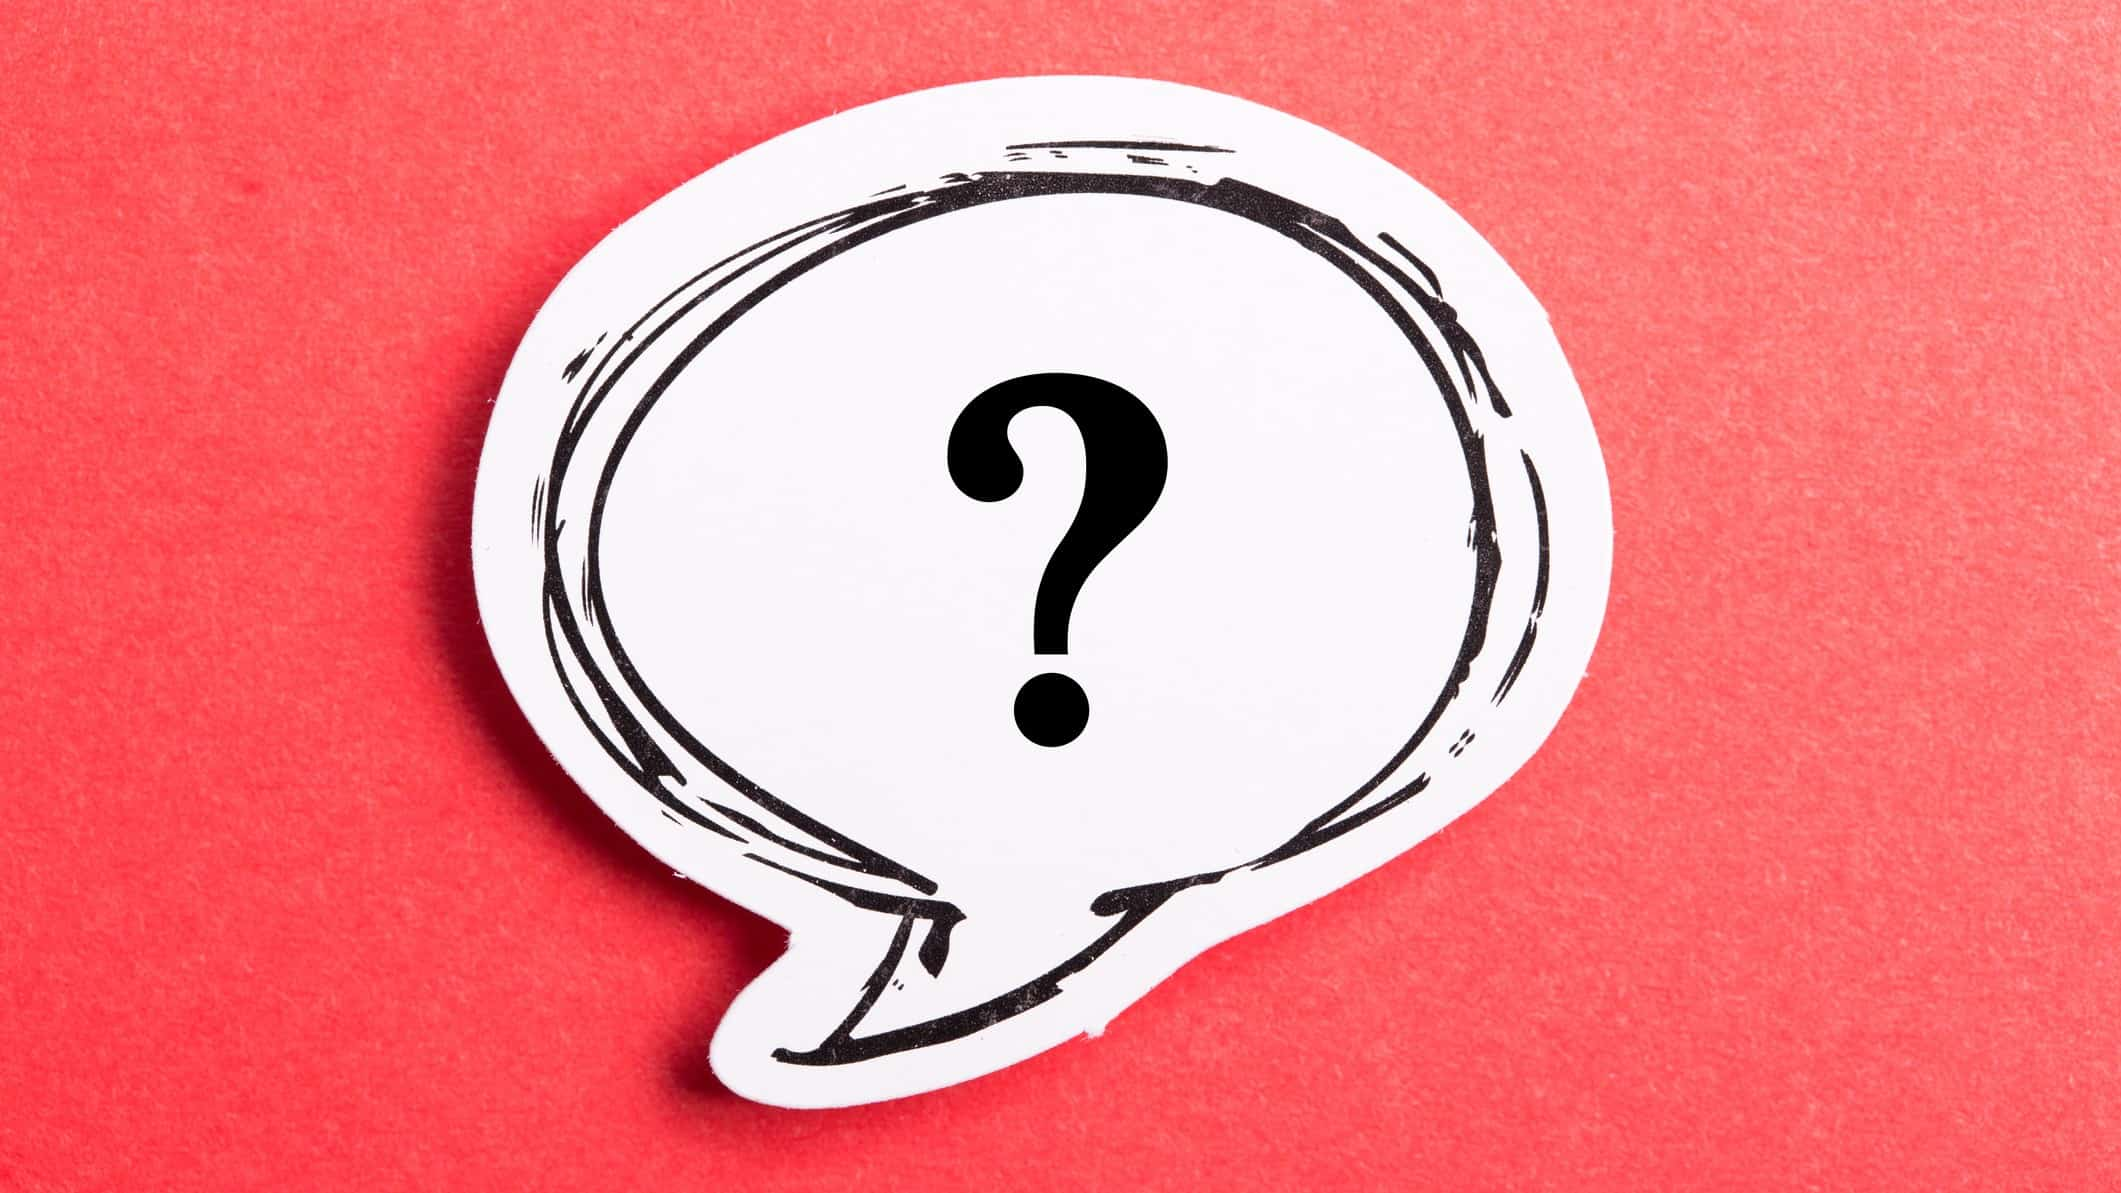 Speech bubble containing question mark against red background representing question of whether red bubble share price will burst